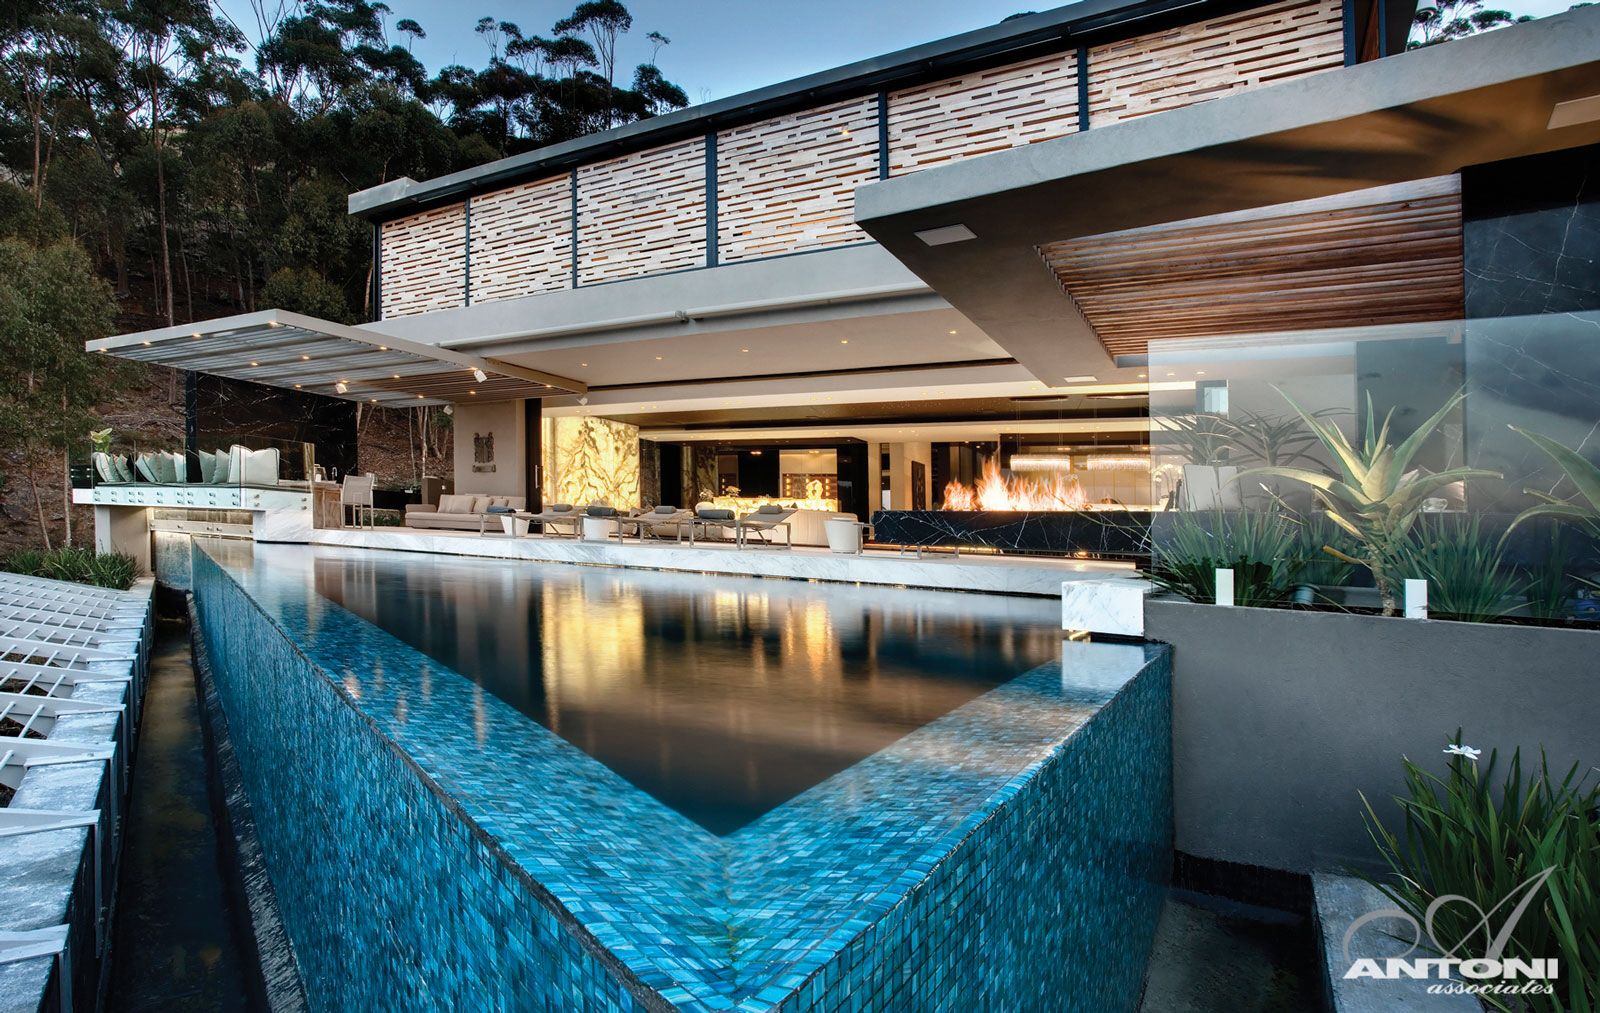 Image from http://myfancyhouse.com/wp-content/uploads/2012/10/Superb-Luxury-Mansion-in-Cape-Town-1.jpg.